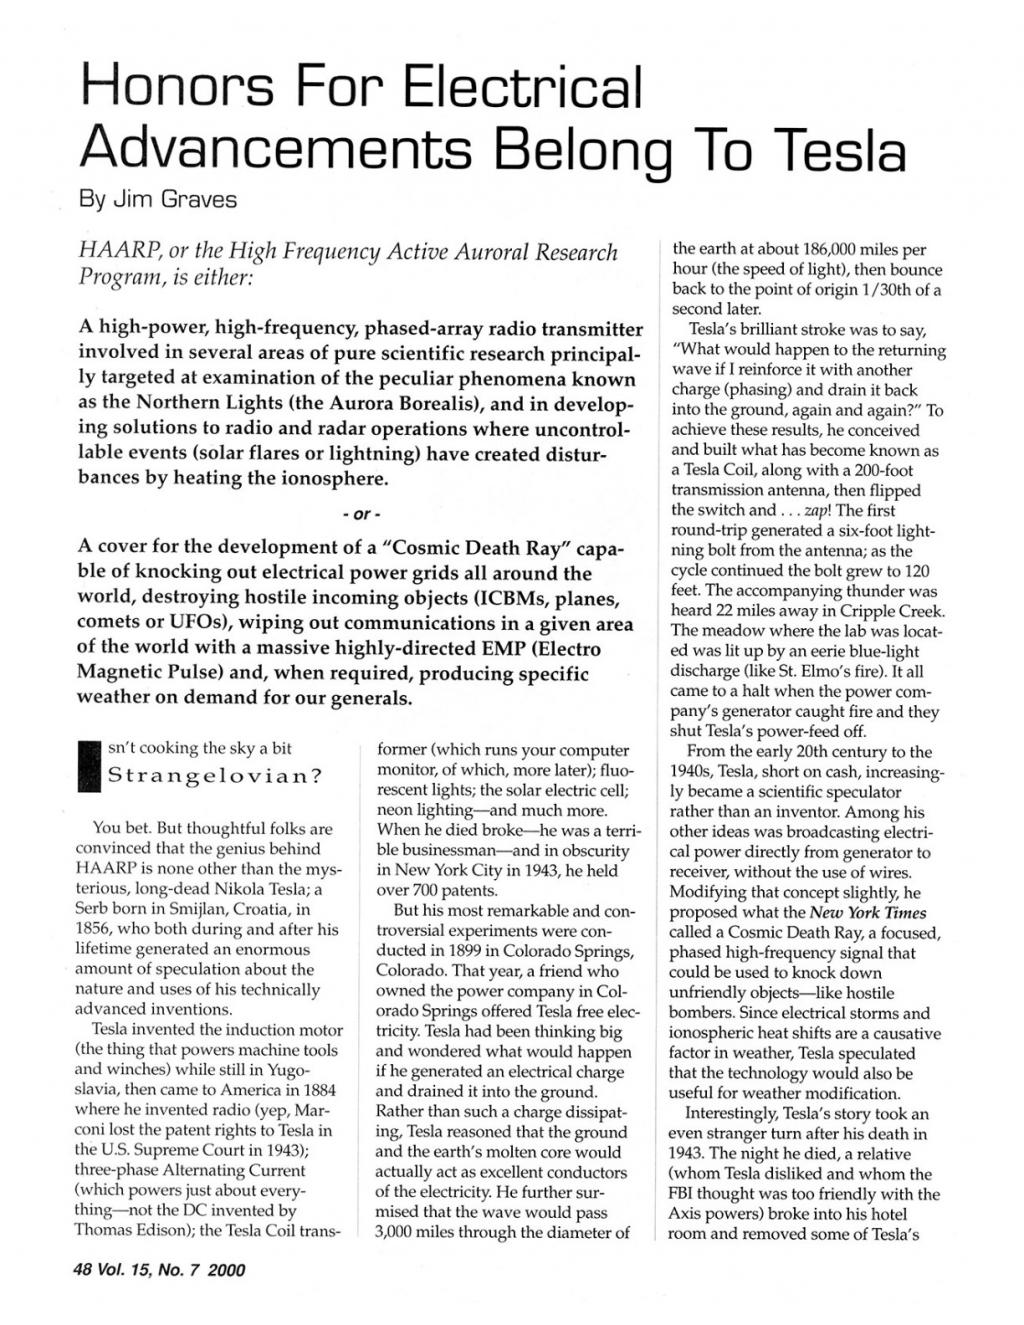 Preview of Honors for Electrical Advancements Belong to Tesla article